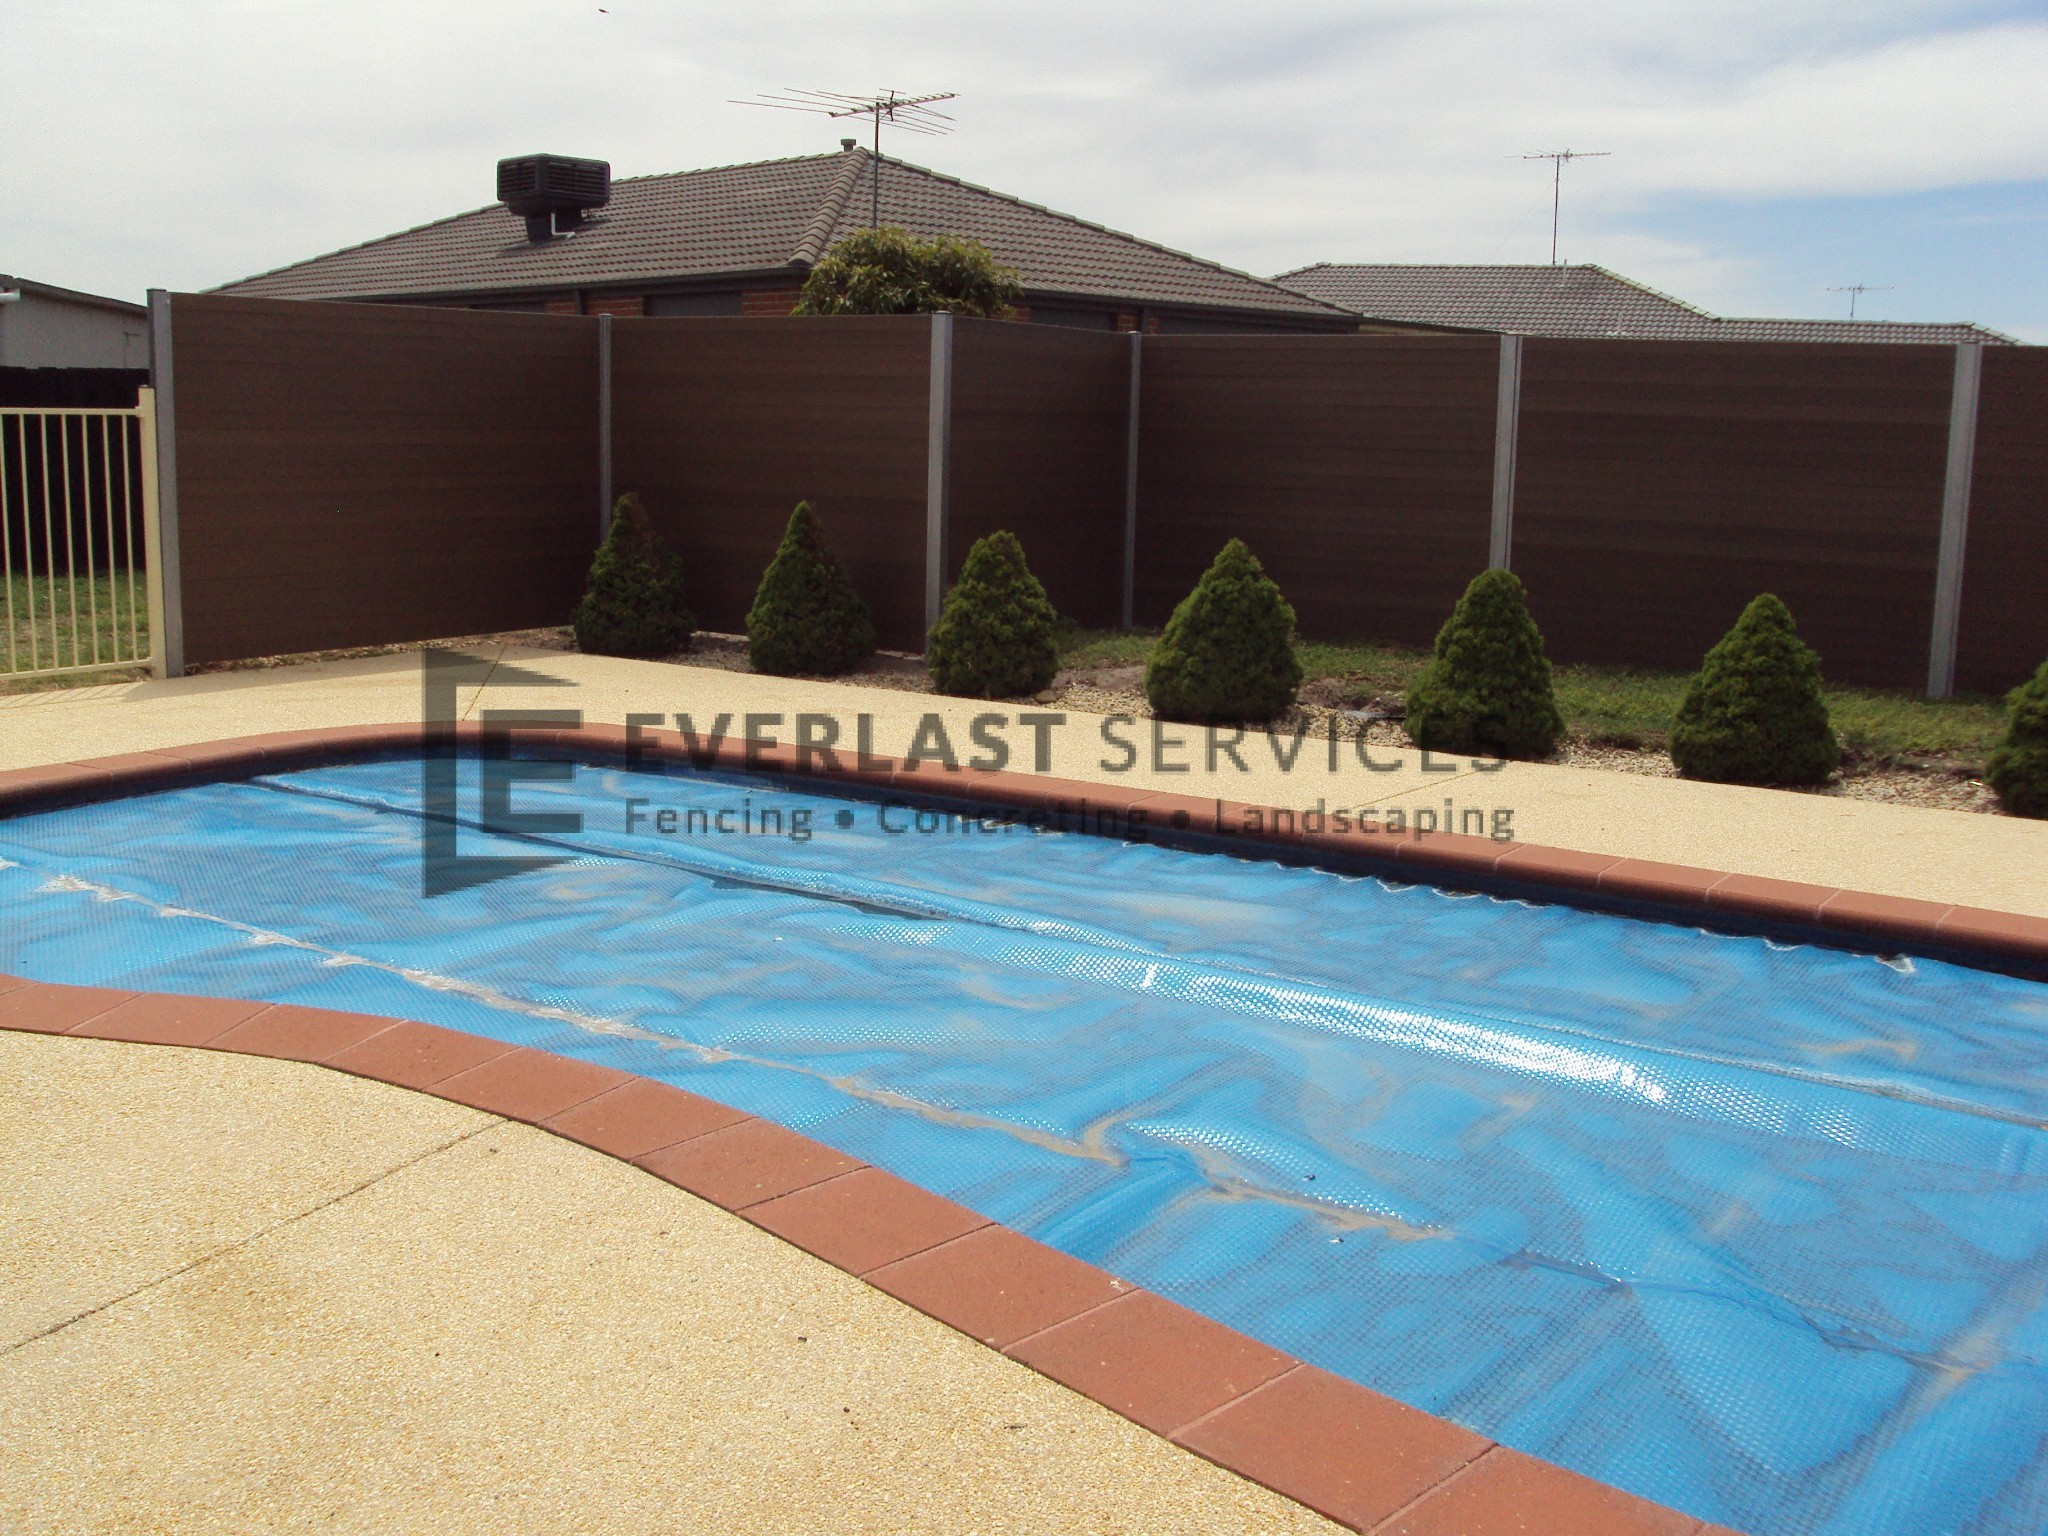 Pool fencing melbourne aluminium fence panel prices cost for Swimming pools melbourne prices